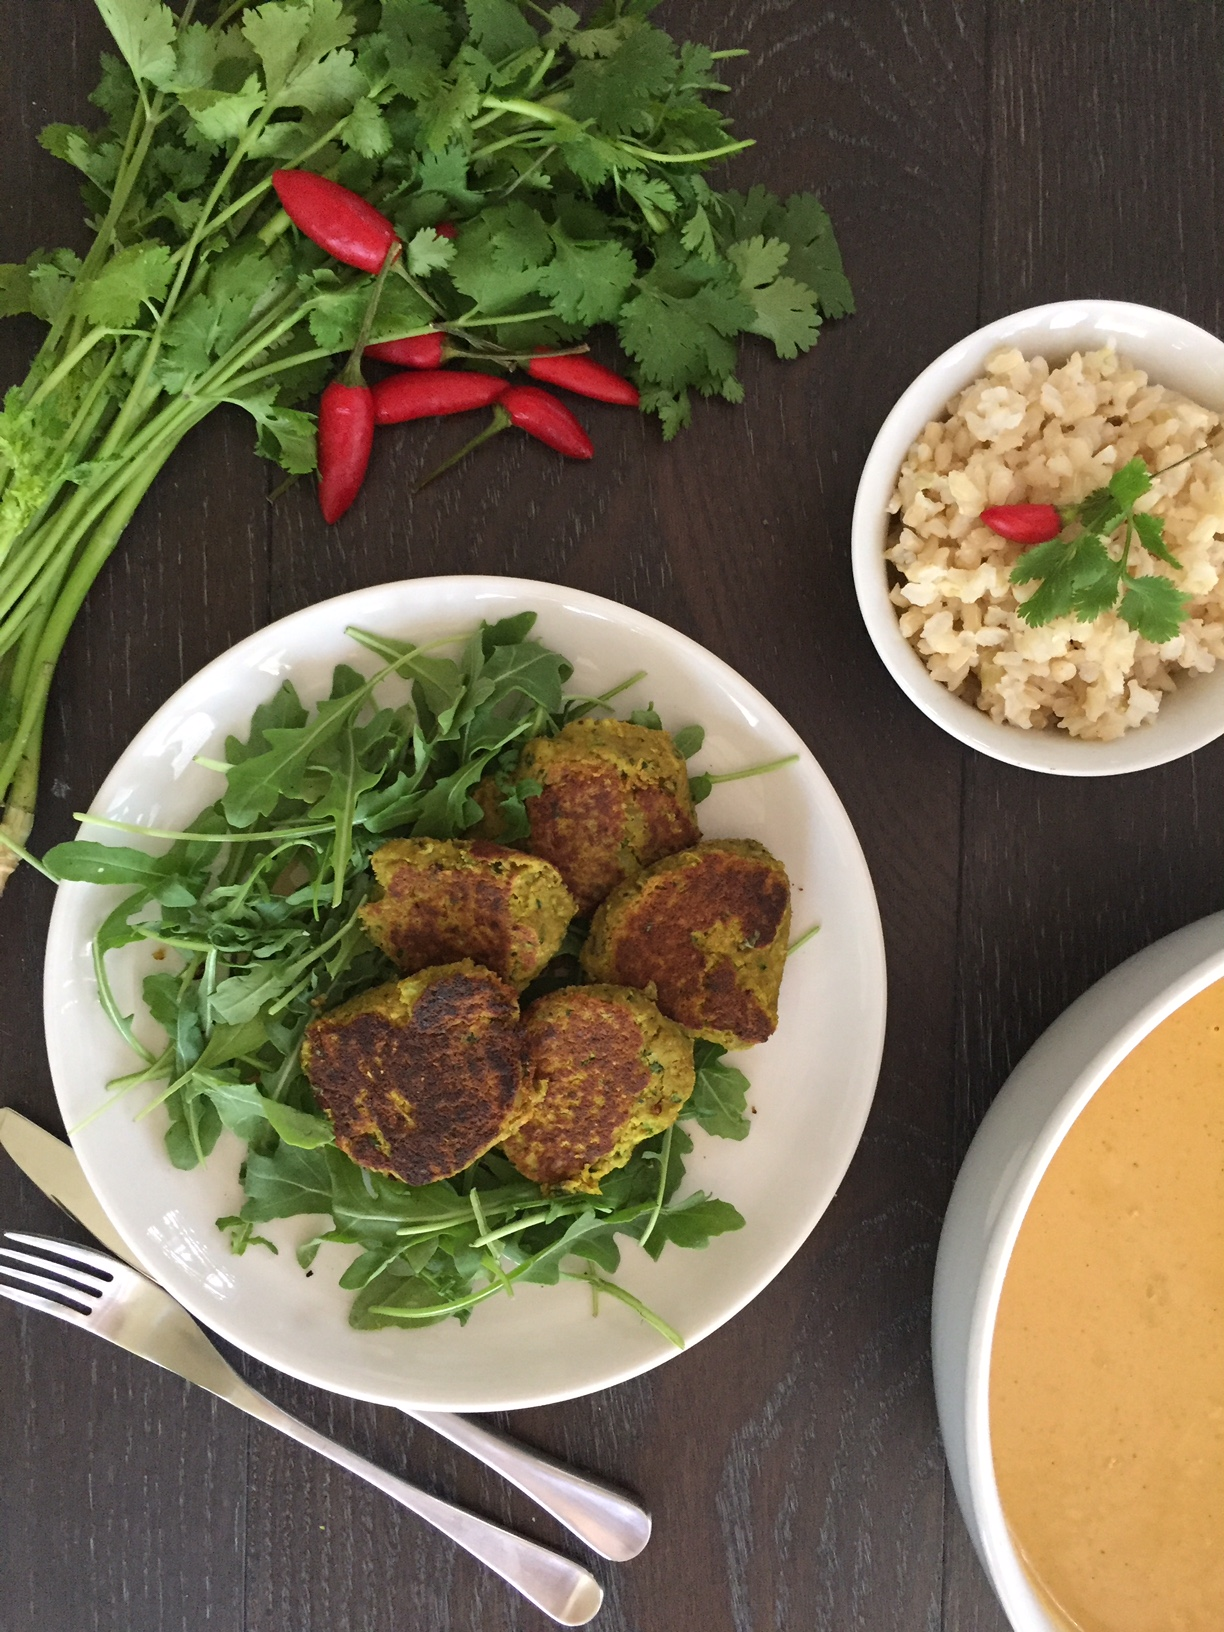 Thermomix Chilli-chickpea + Sunflower 'Meatballs' w. Golden Cashew Curry Sauce